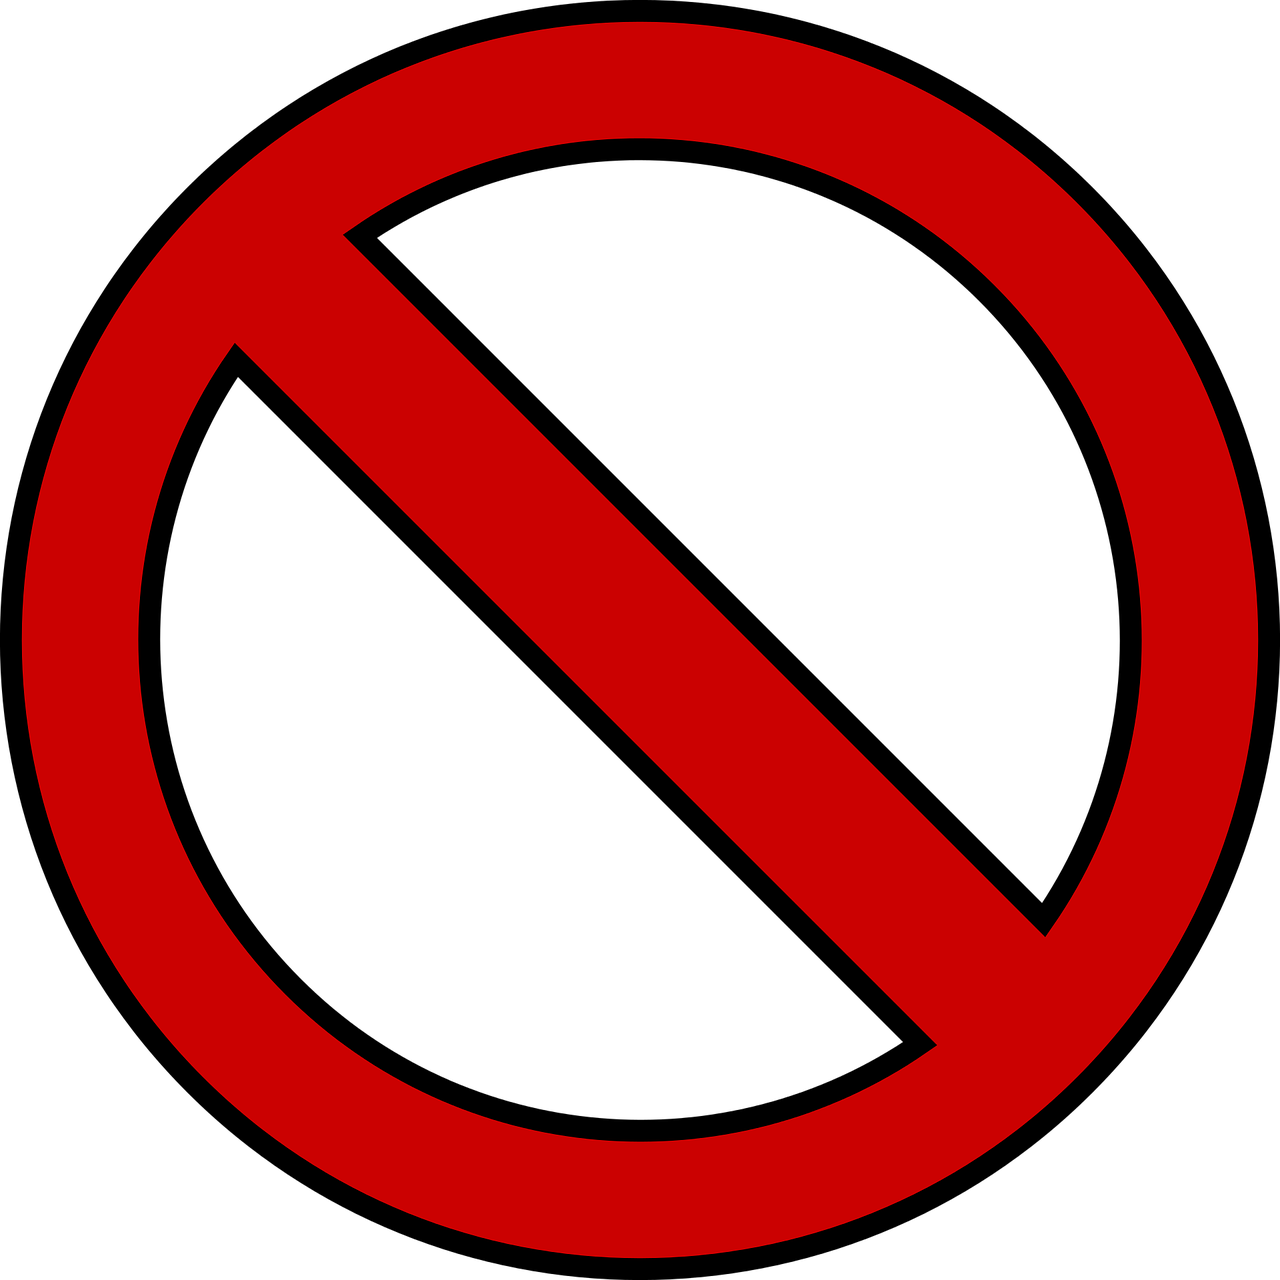 black and white stock Banned transparent symbol png.  for free download